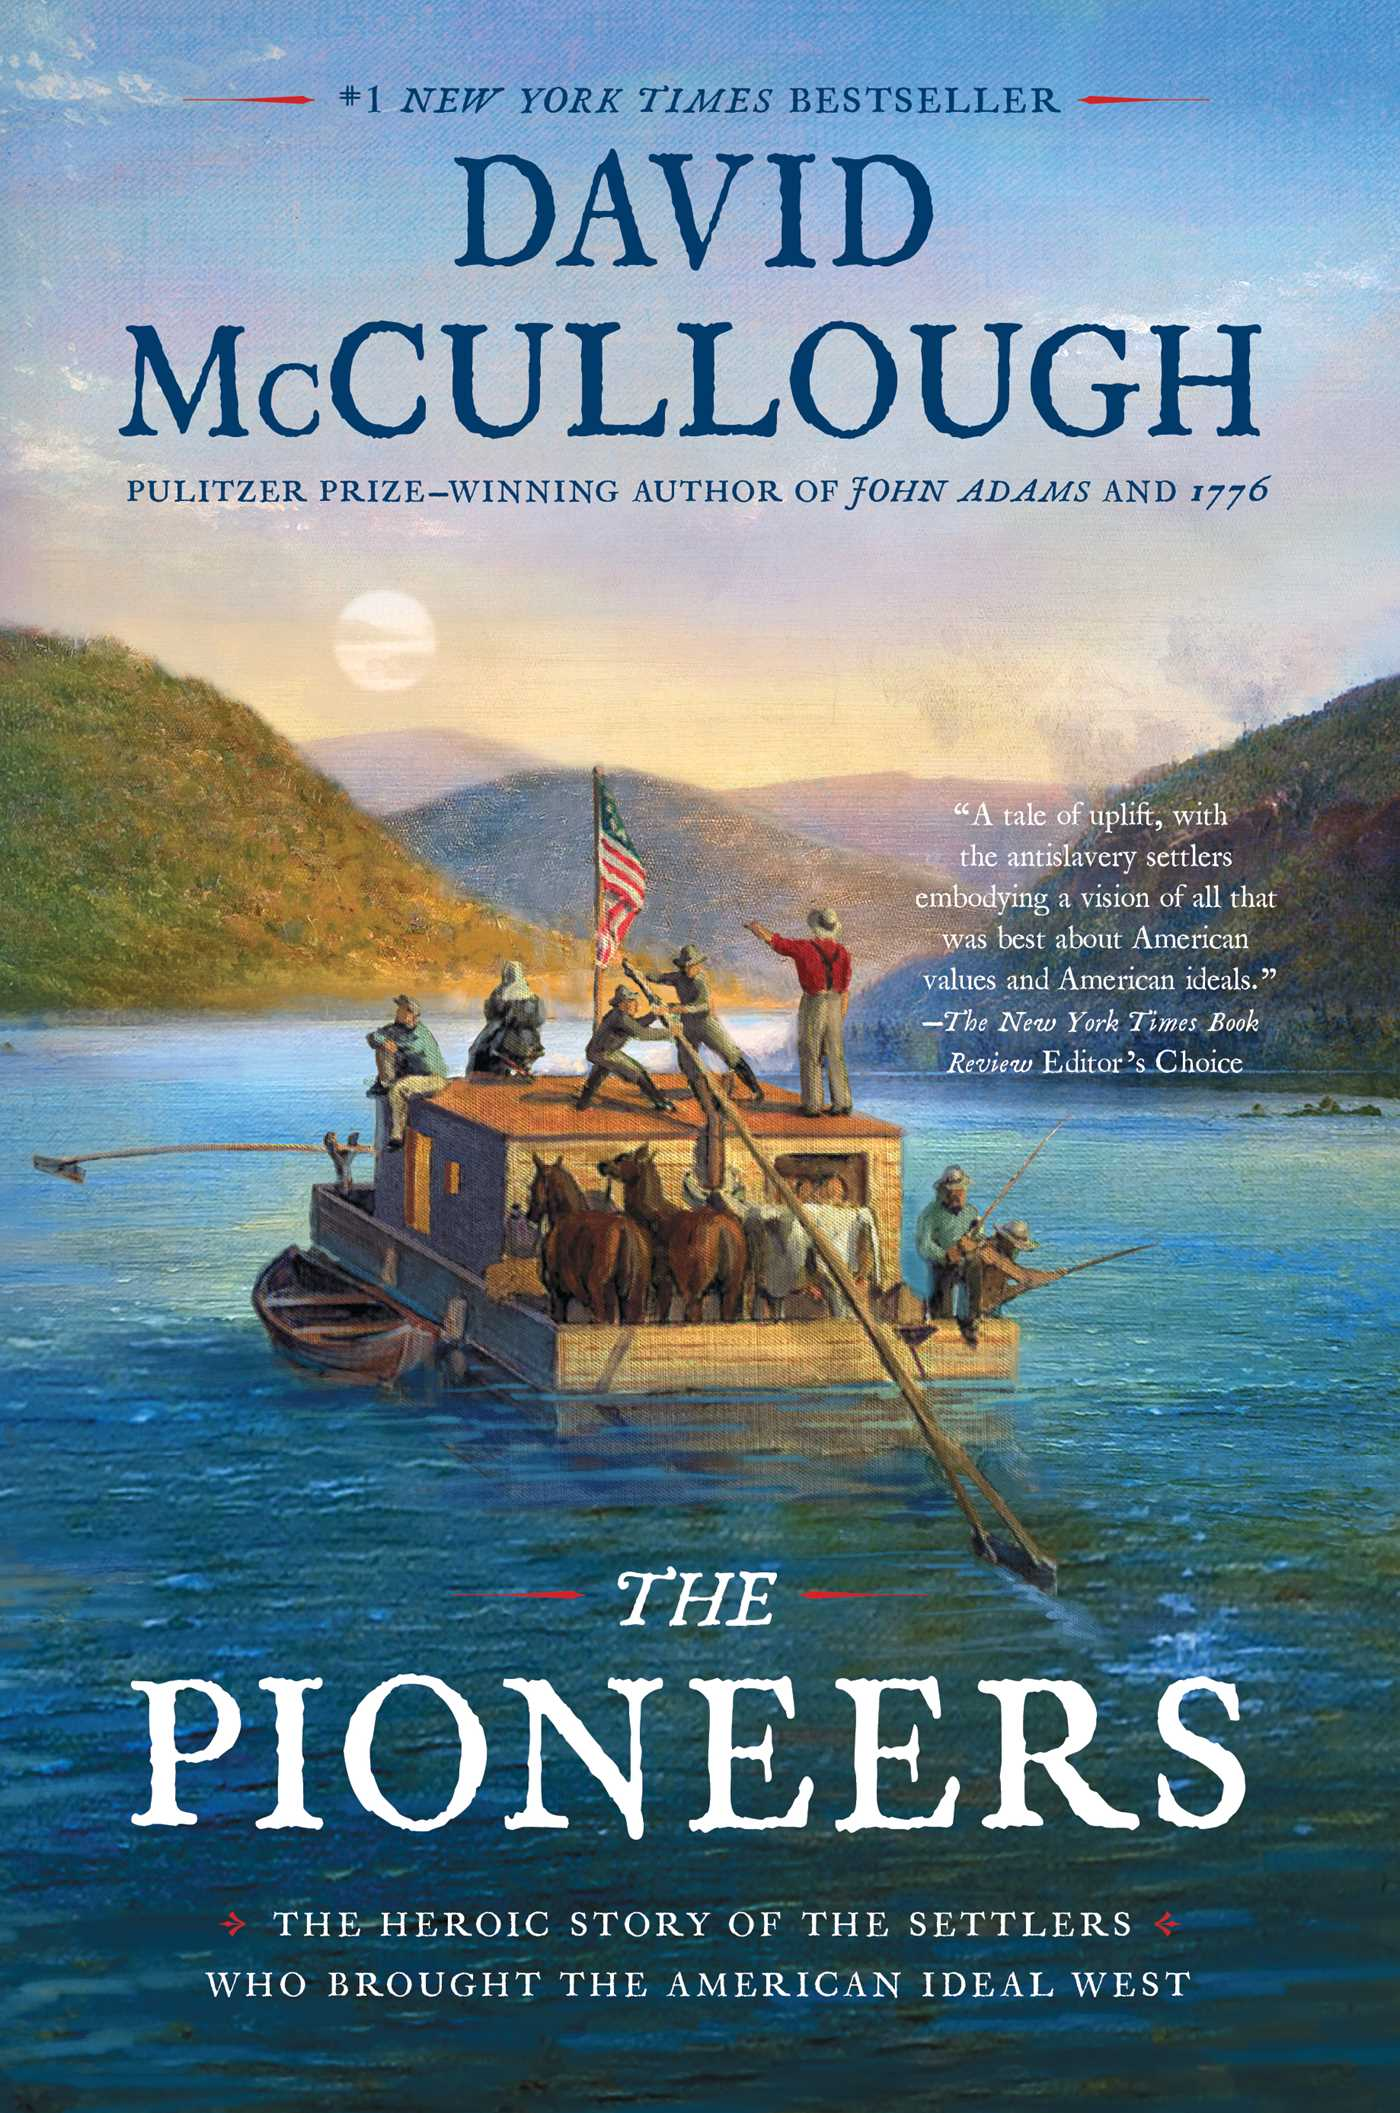 The pioneers the heroic story of the settlers who brought the American ideal west cover image